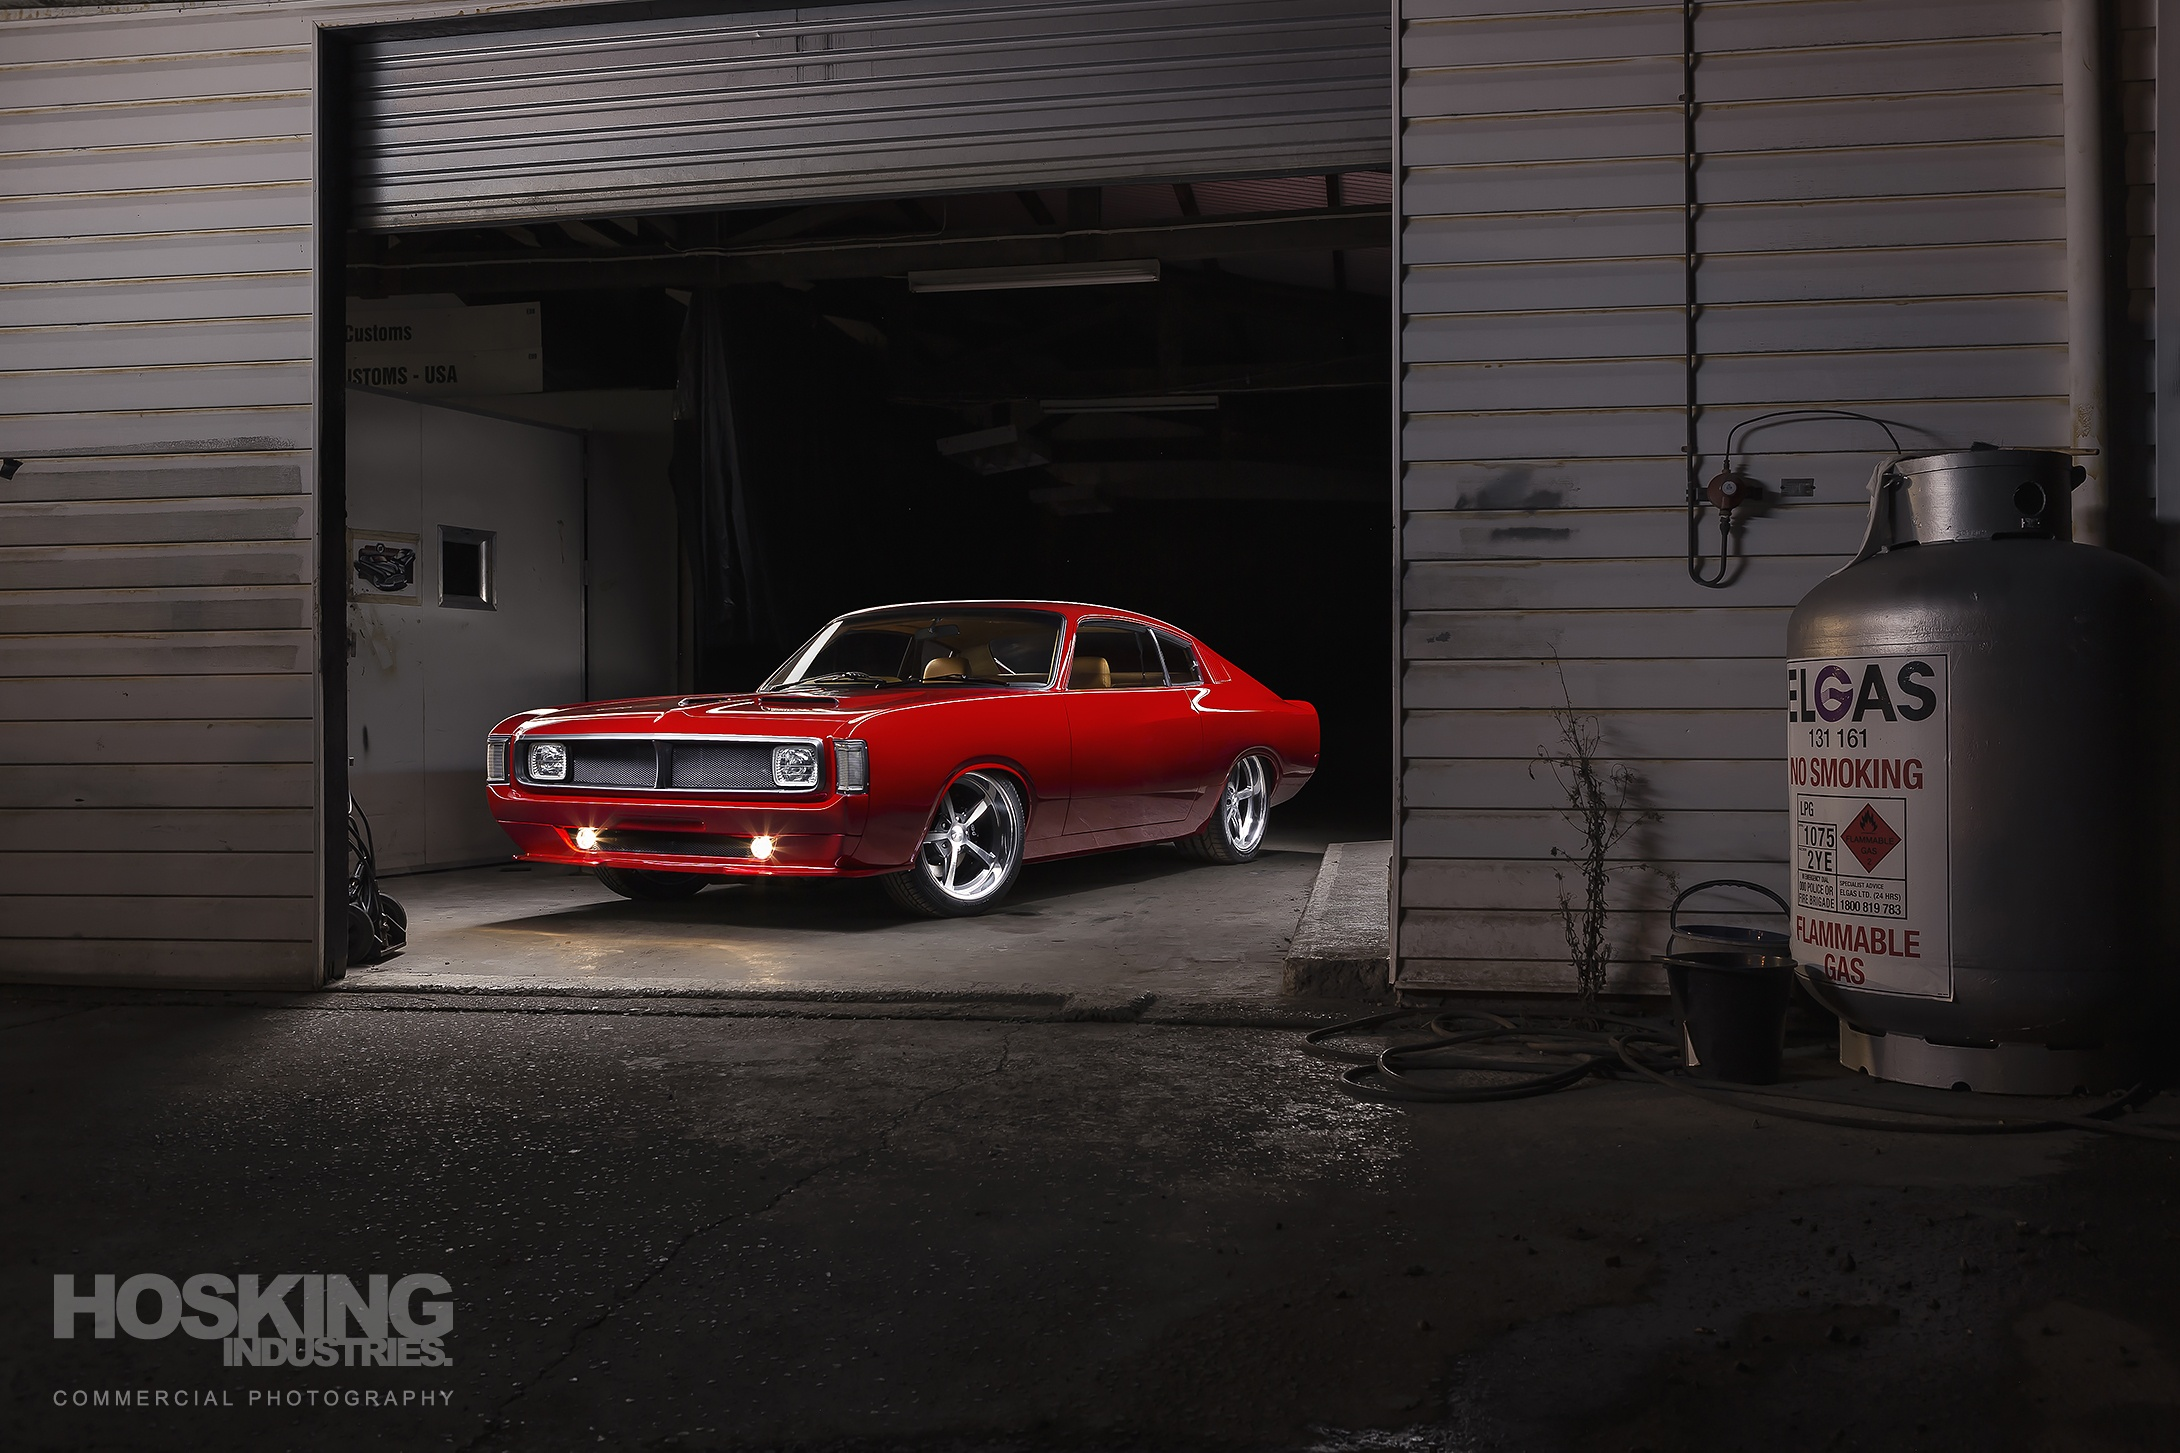 Mario's red Valiant Charger